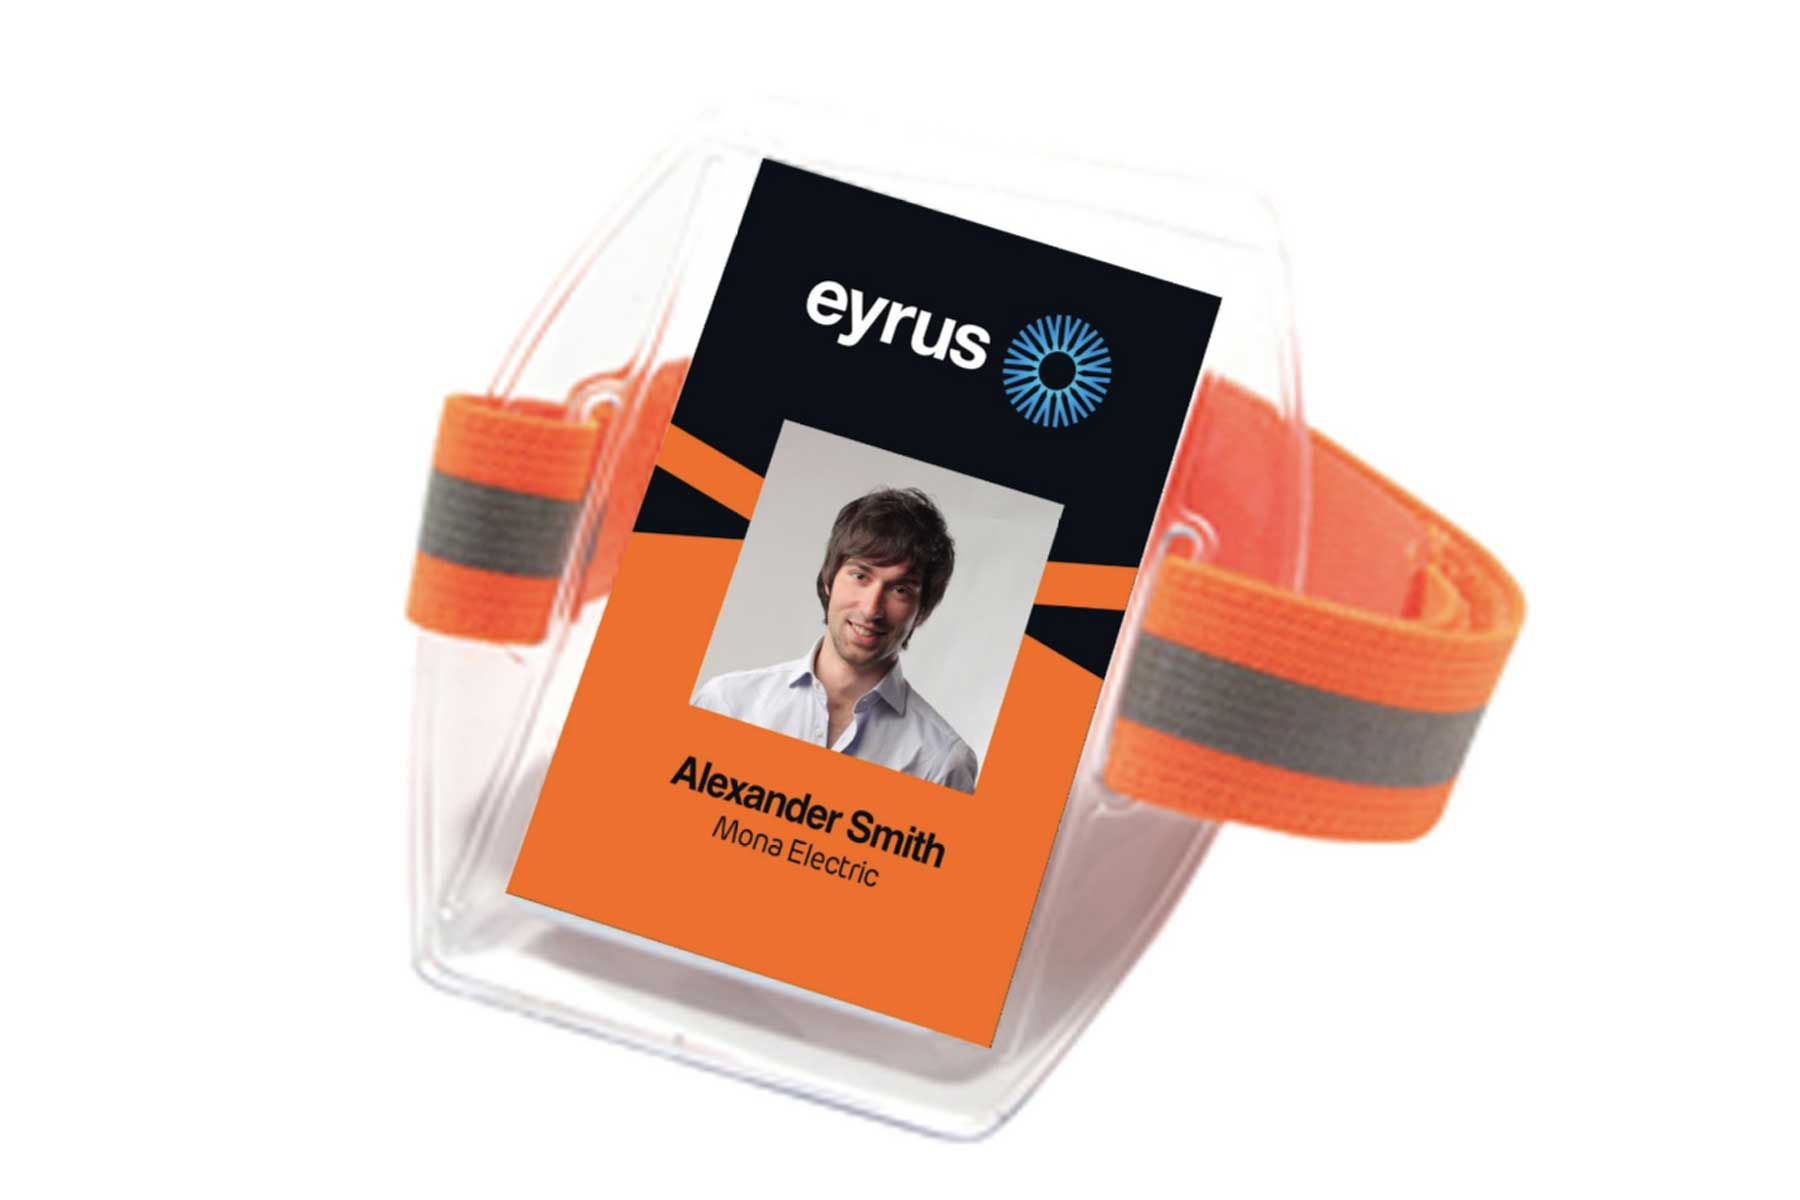 Near-Field Communication badge that can track users through a worksite